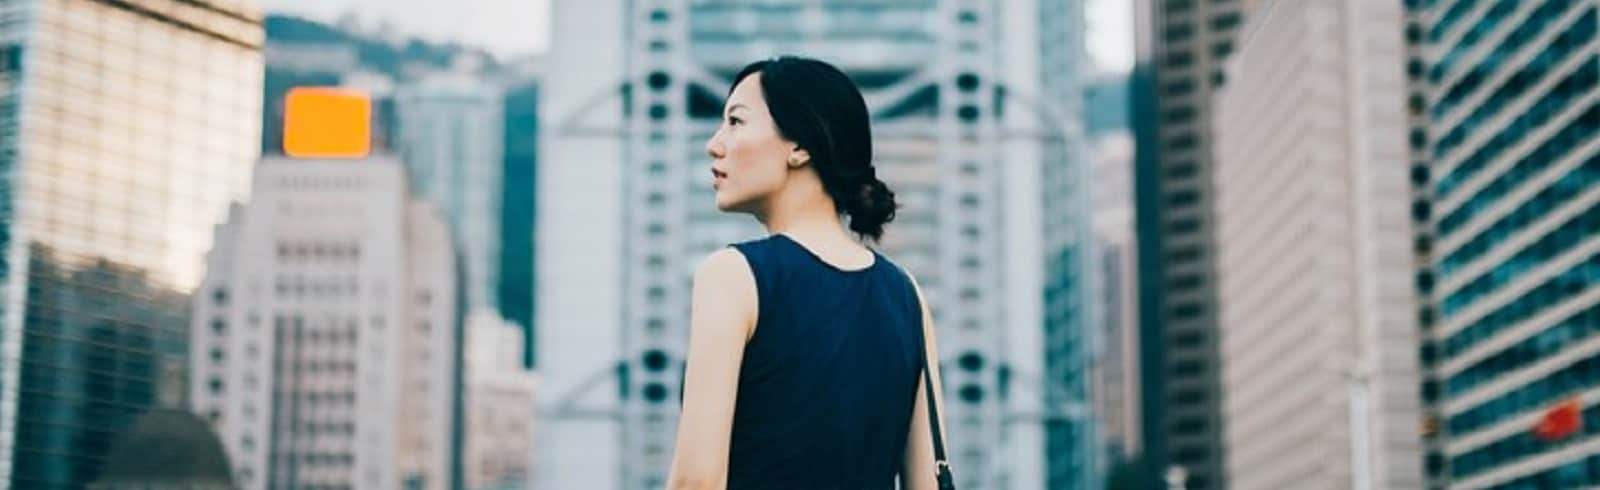 Successful young businesswoman looking away with confidence standing against urban cityscape